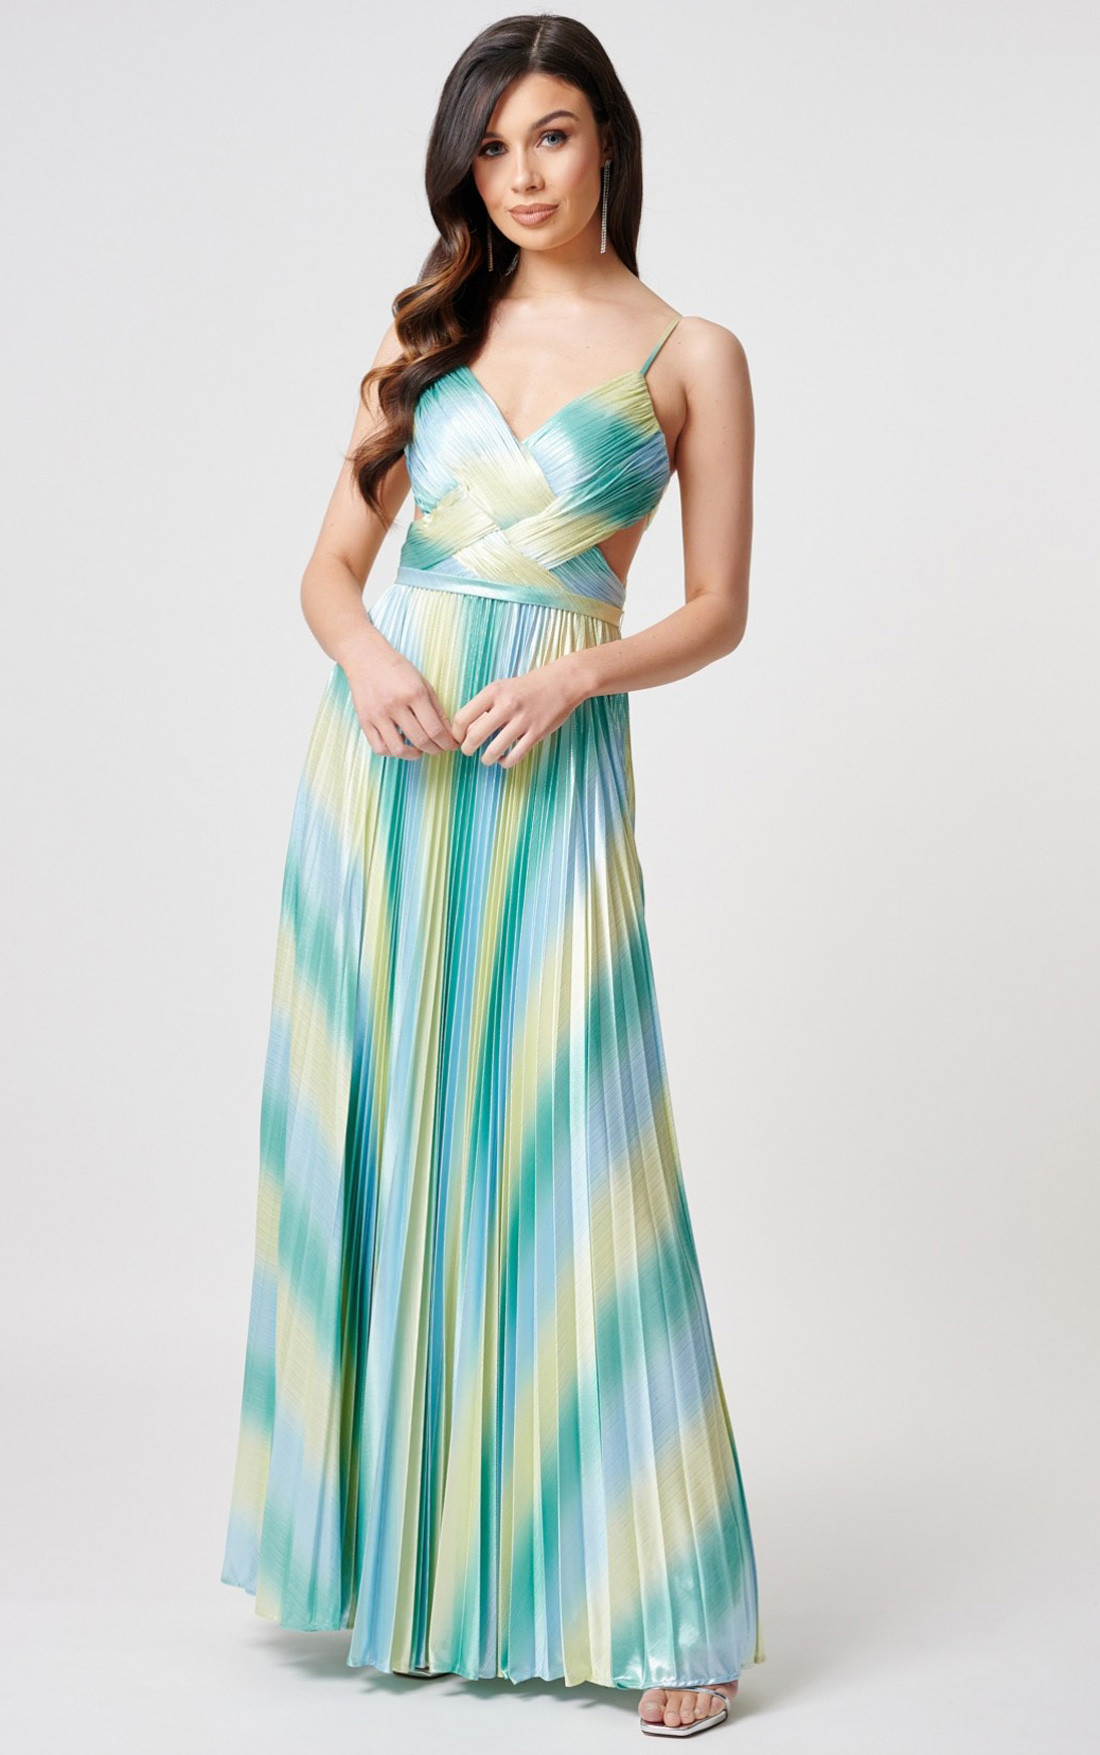 Forever Unique - Gillian Turquoise And Lime Pleated Maxi Dress (MN206803)